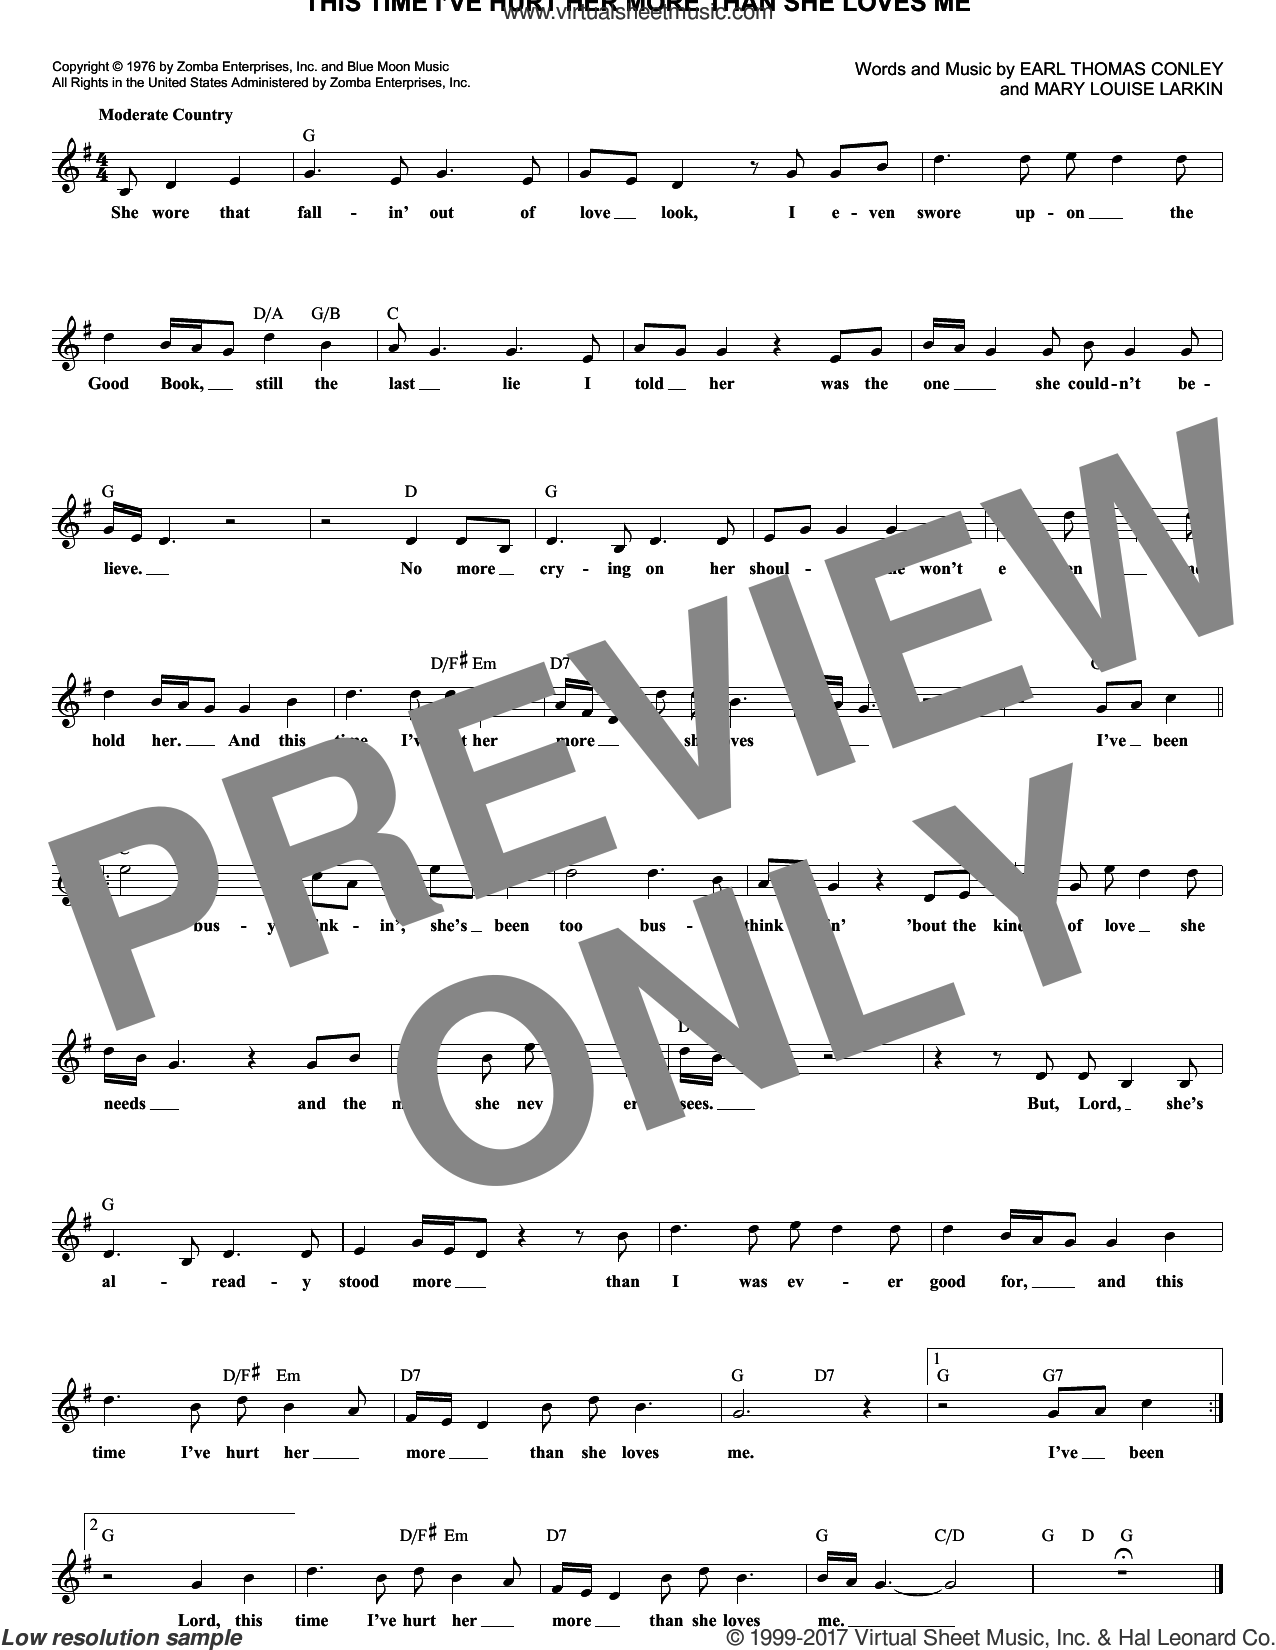 This Time I've Hurt Her More Than She Loves Me sheet music for voice and other instruments (fake book) by Mary Louise Larkin and Conway Twitty. Score Image Preview.